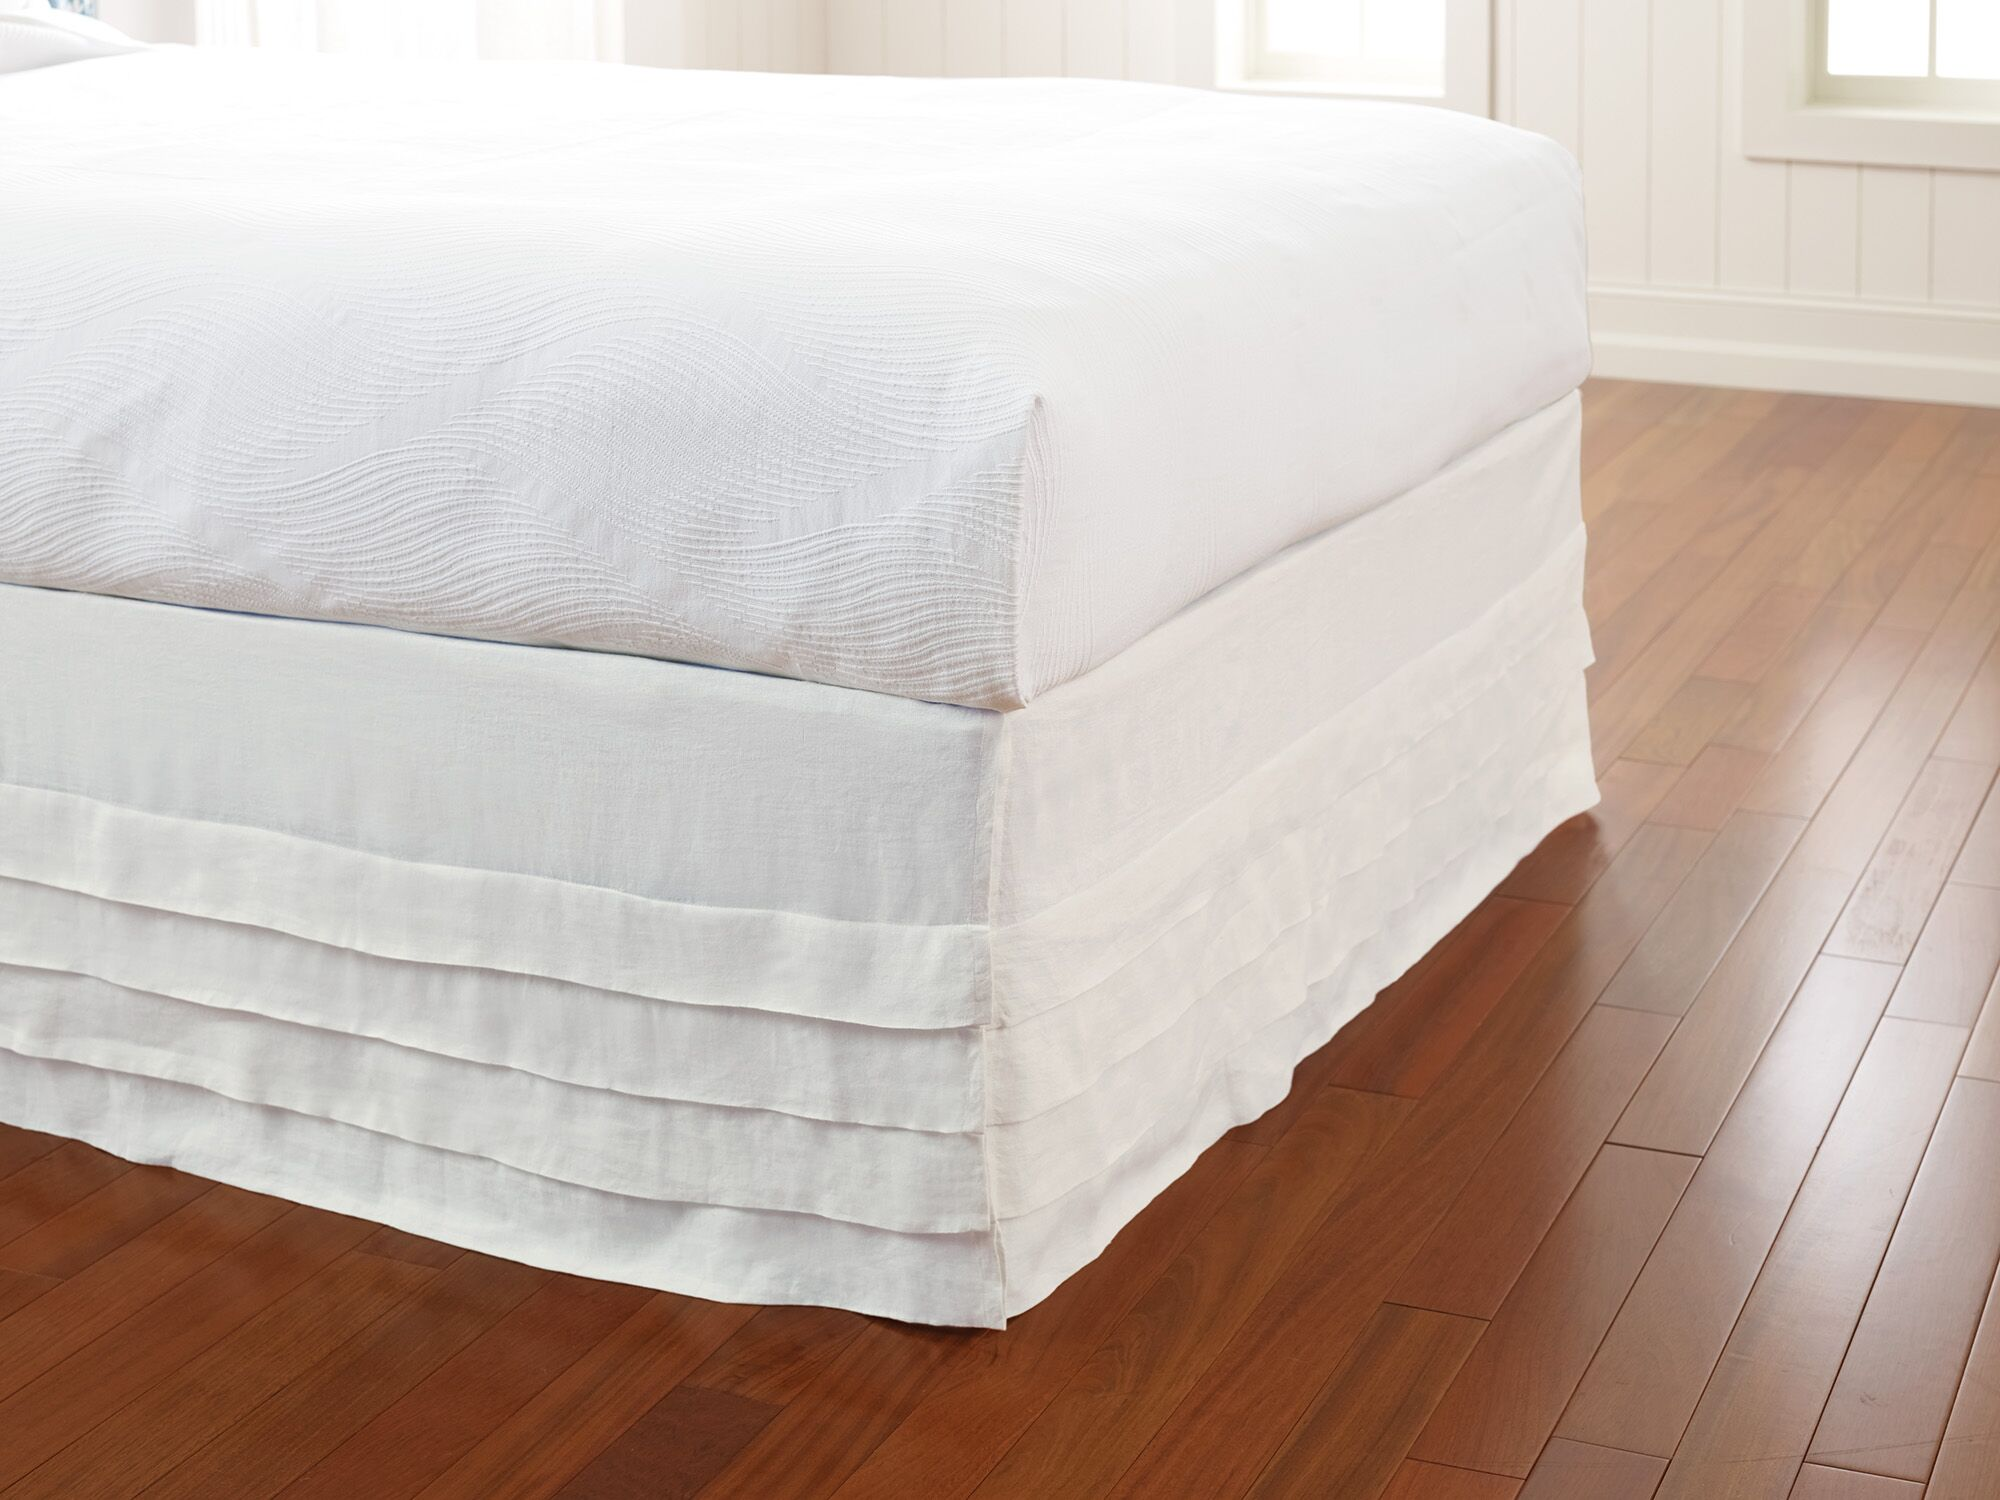 Waterfall Panel Bed Skirt Size: King, Color: White